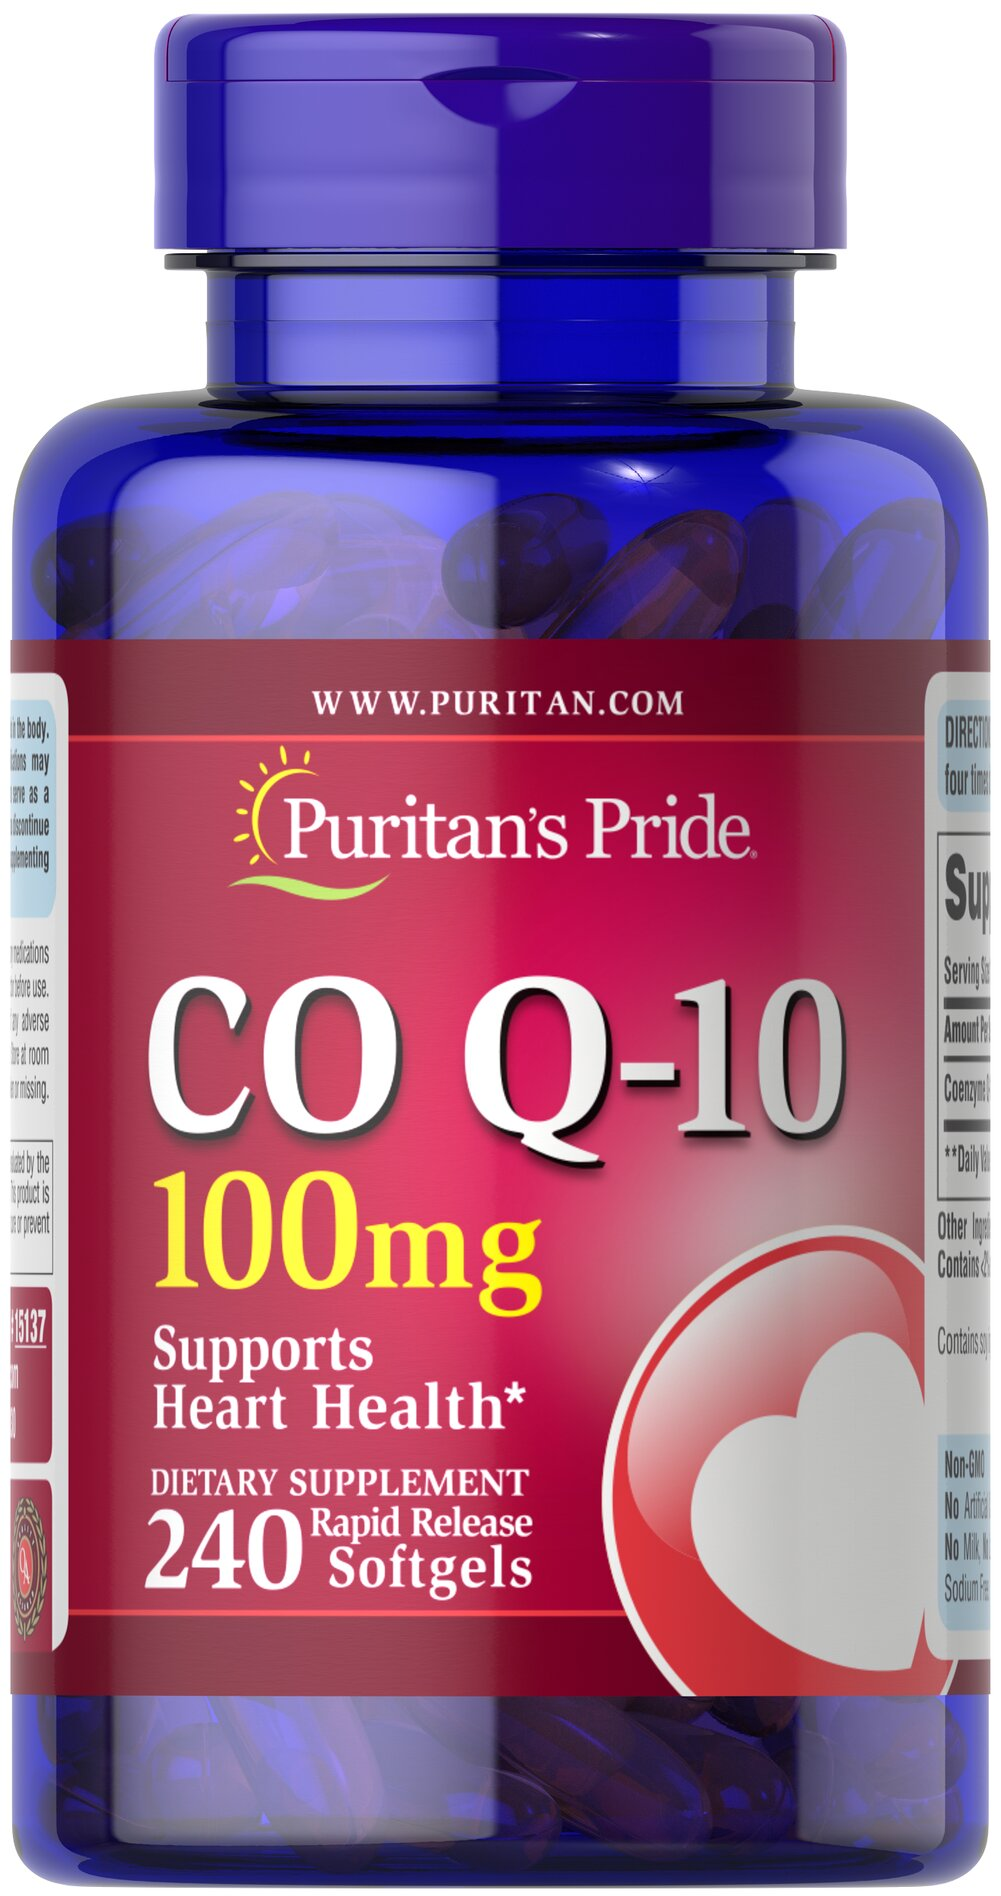 Q-SORB™ Co Q-10 100 mg Thumbnail Alternate Bottle View